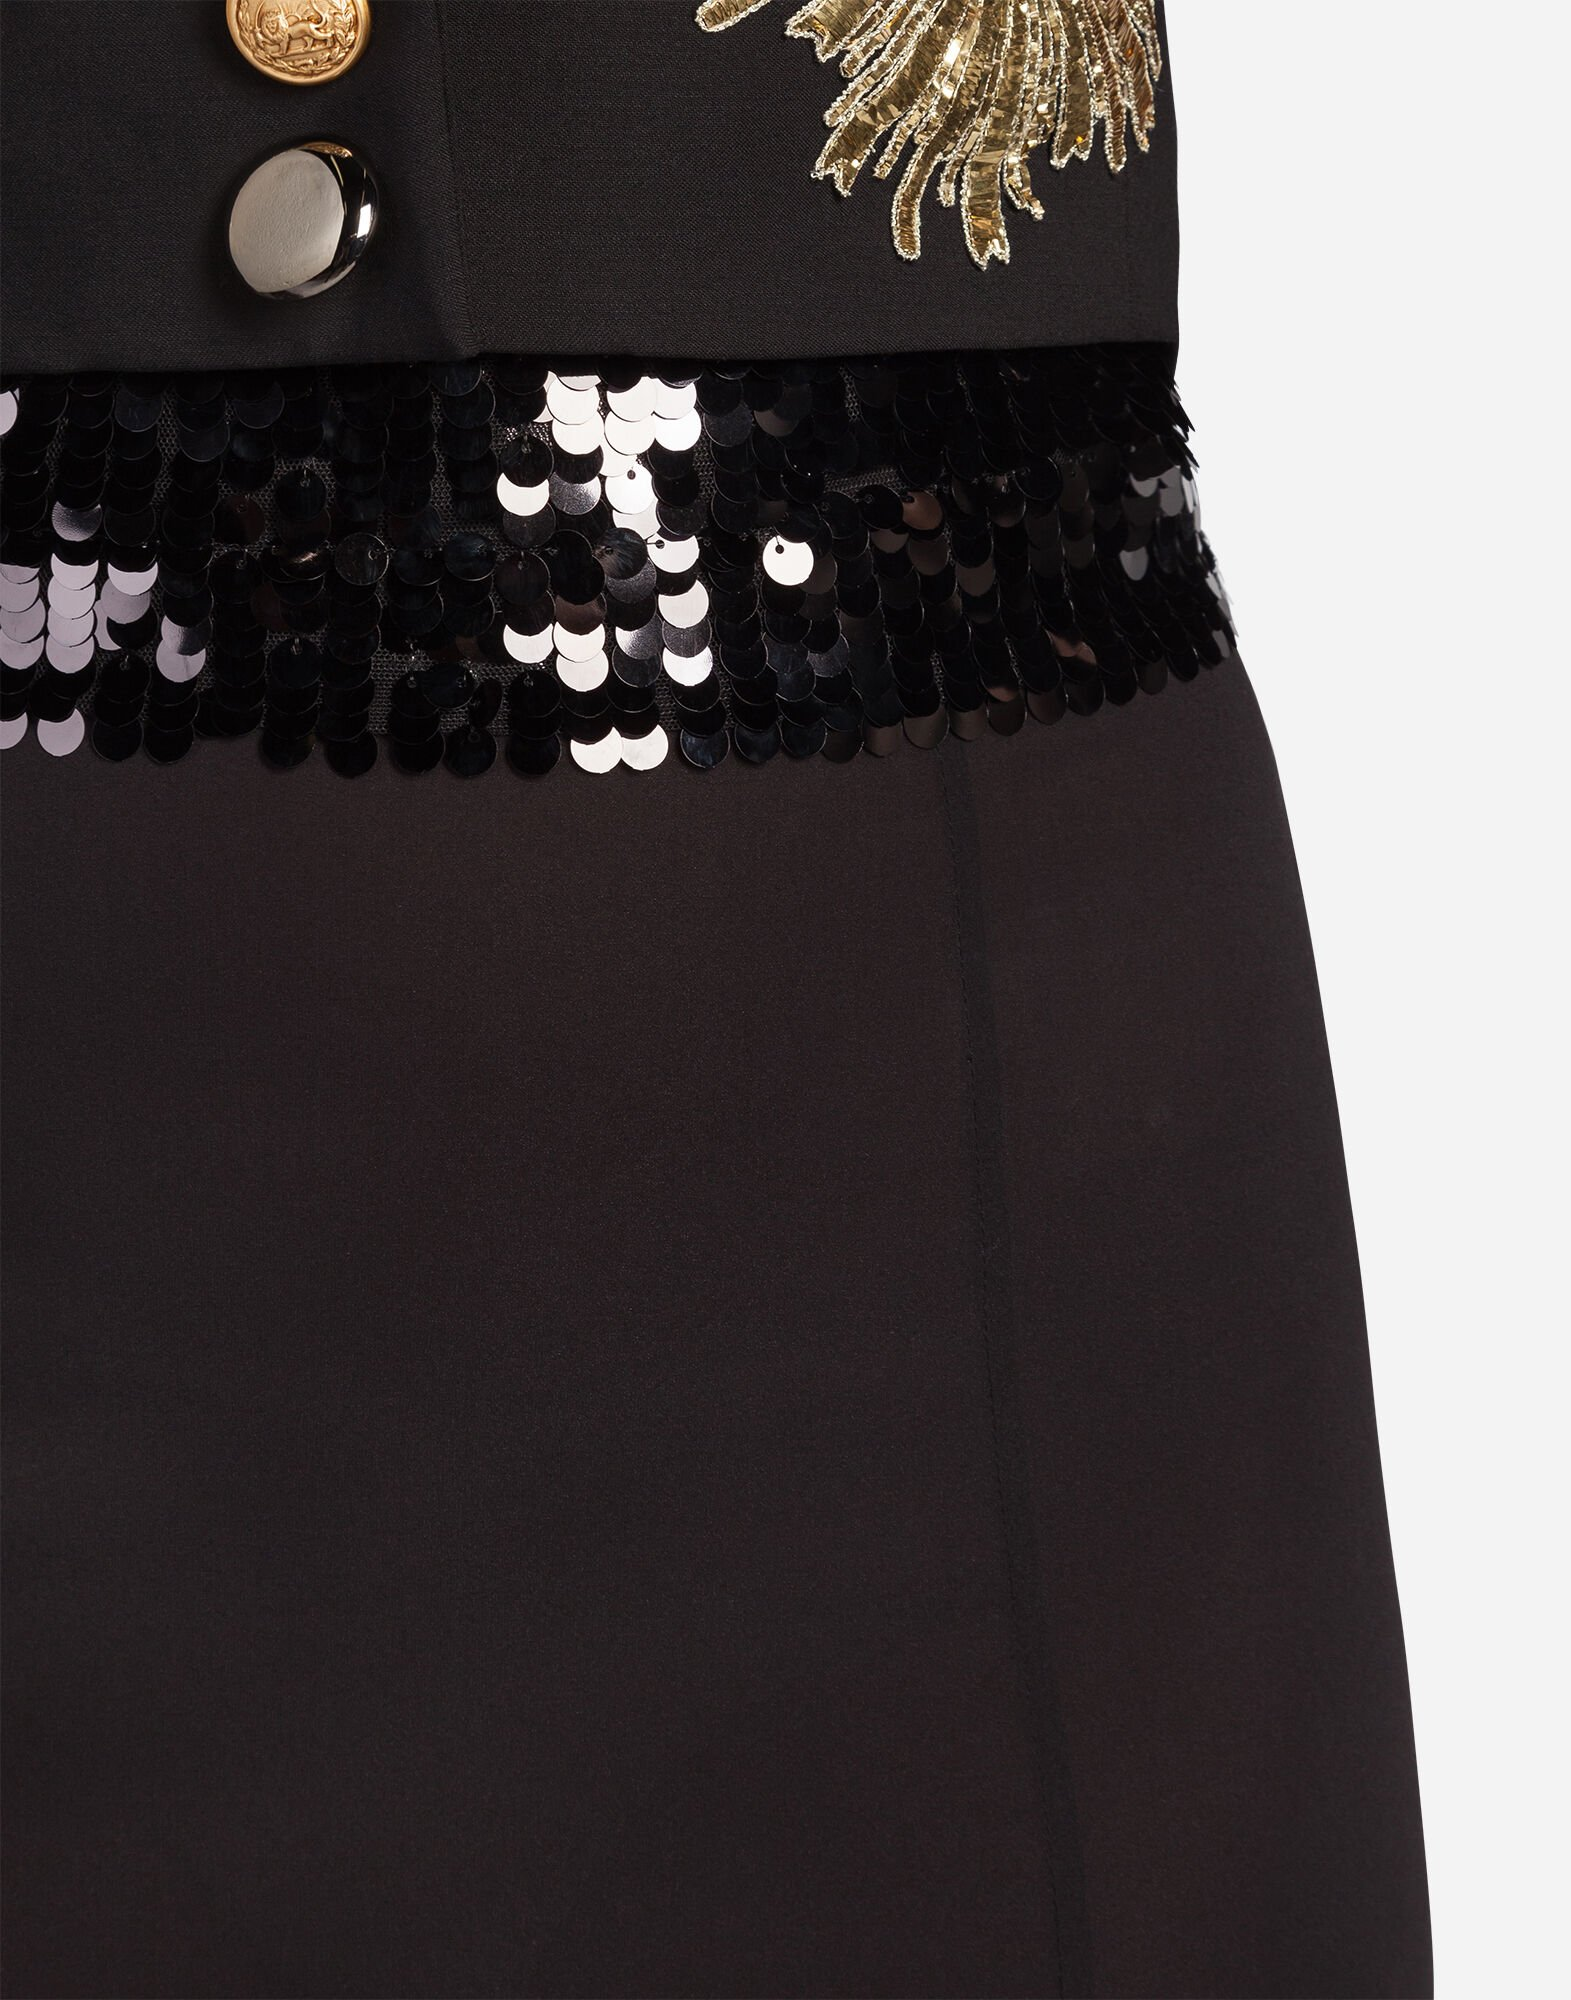 SILK SKIRT WITH SEQUINS